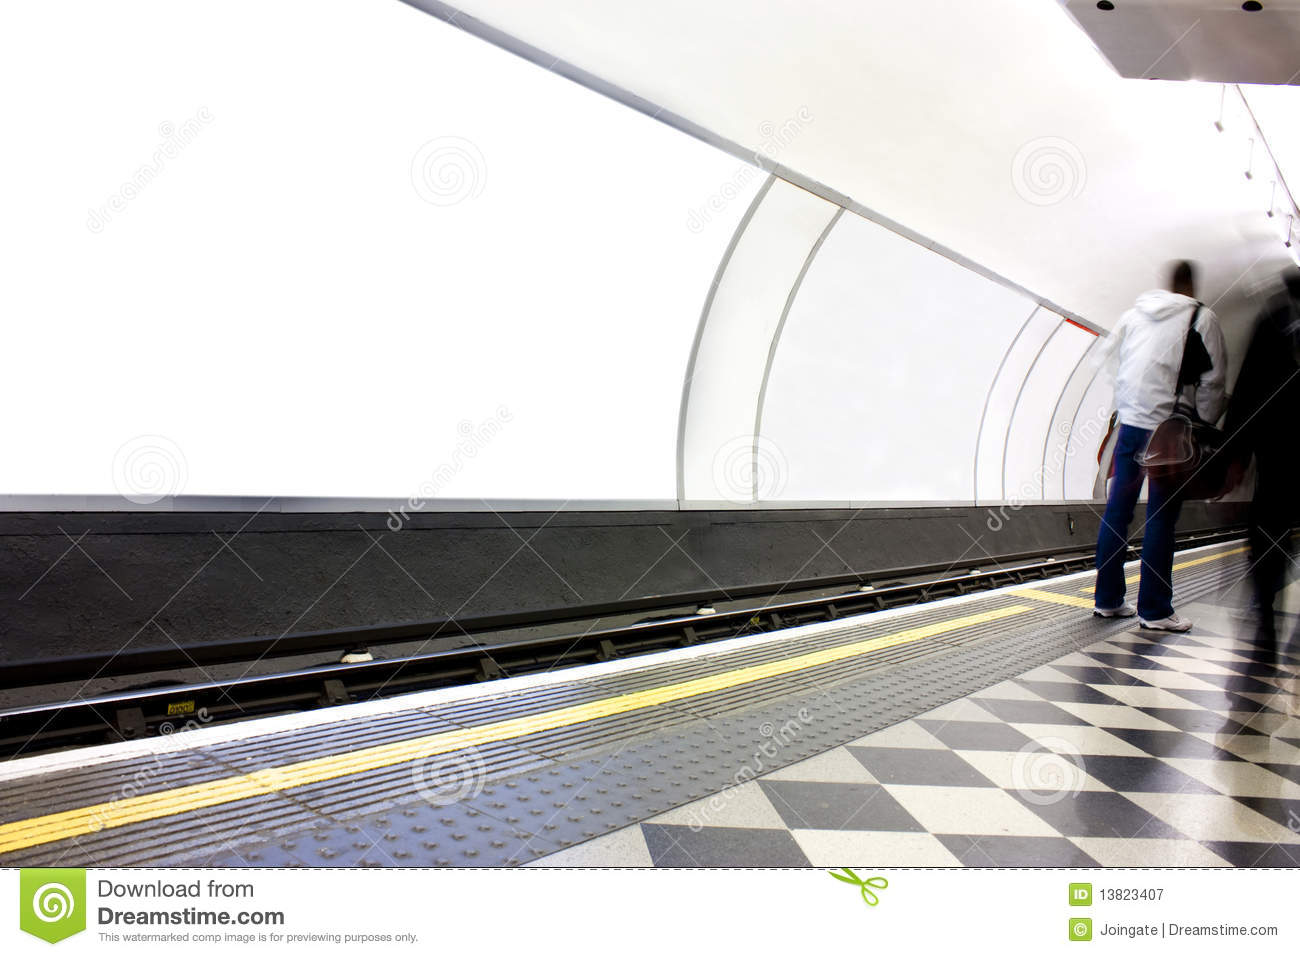 Advertising Poster Site In London Underground Royalty Free ...